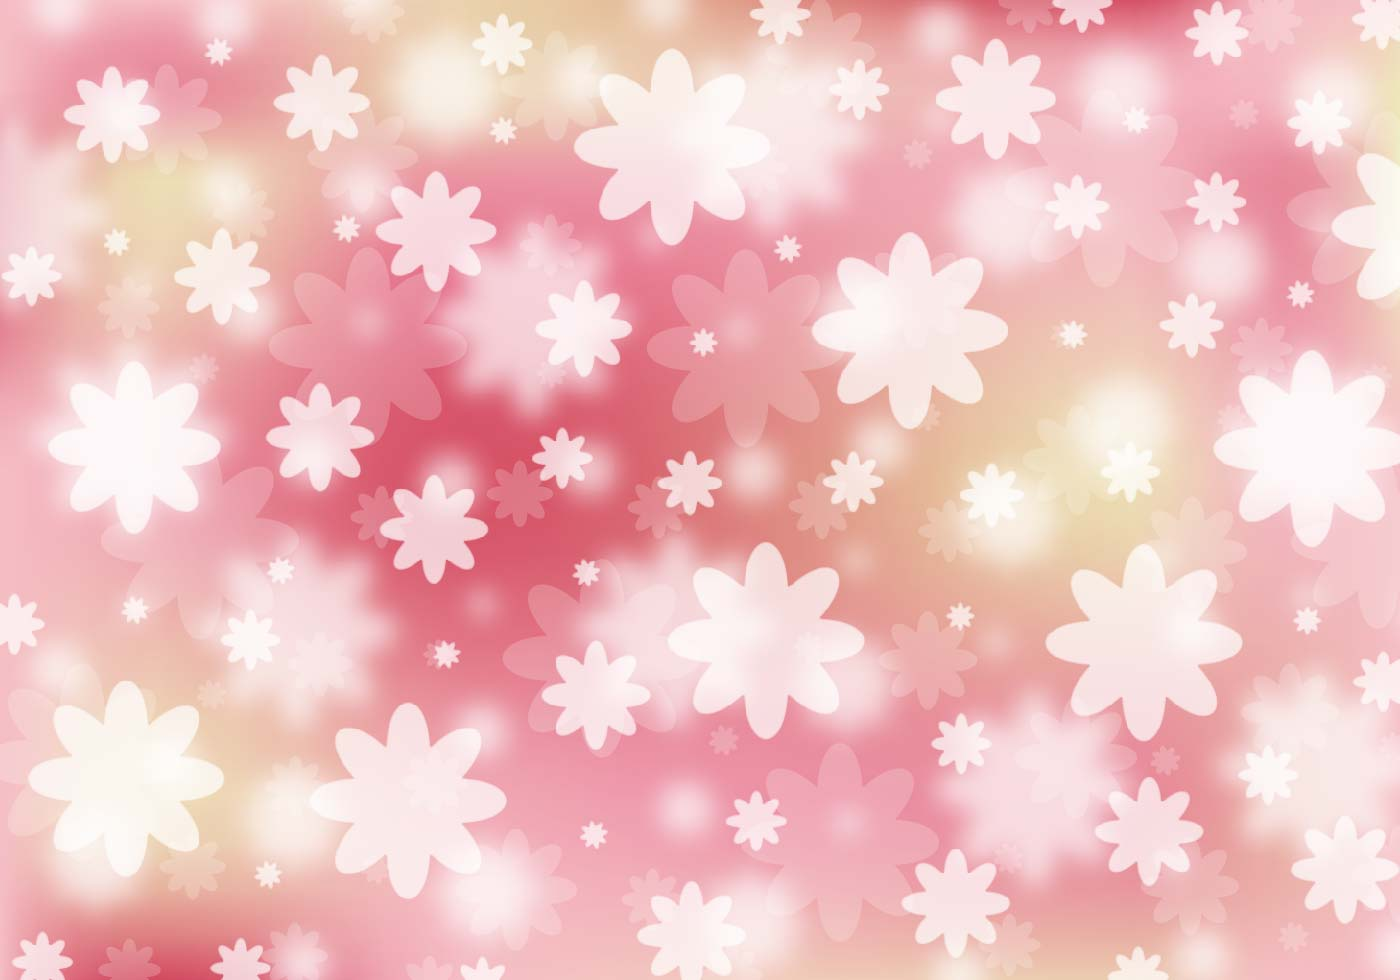 Free Vector Abstract Floral Background - Download Free ...